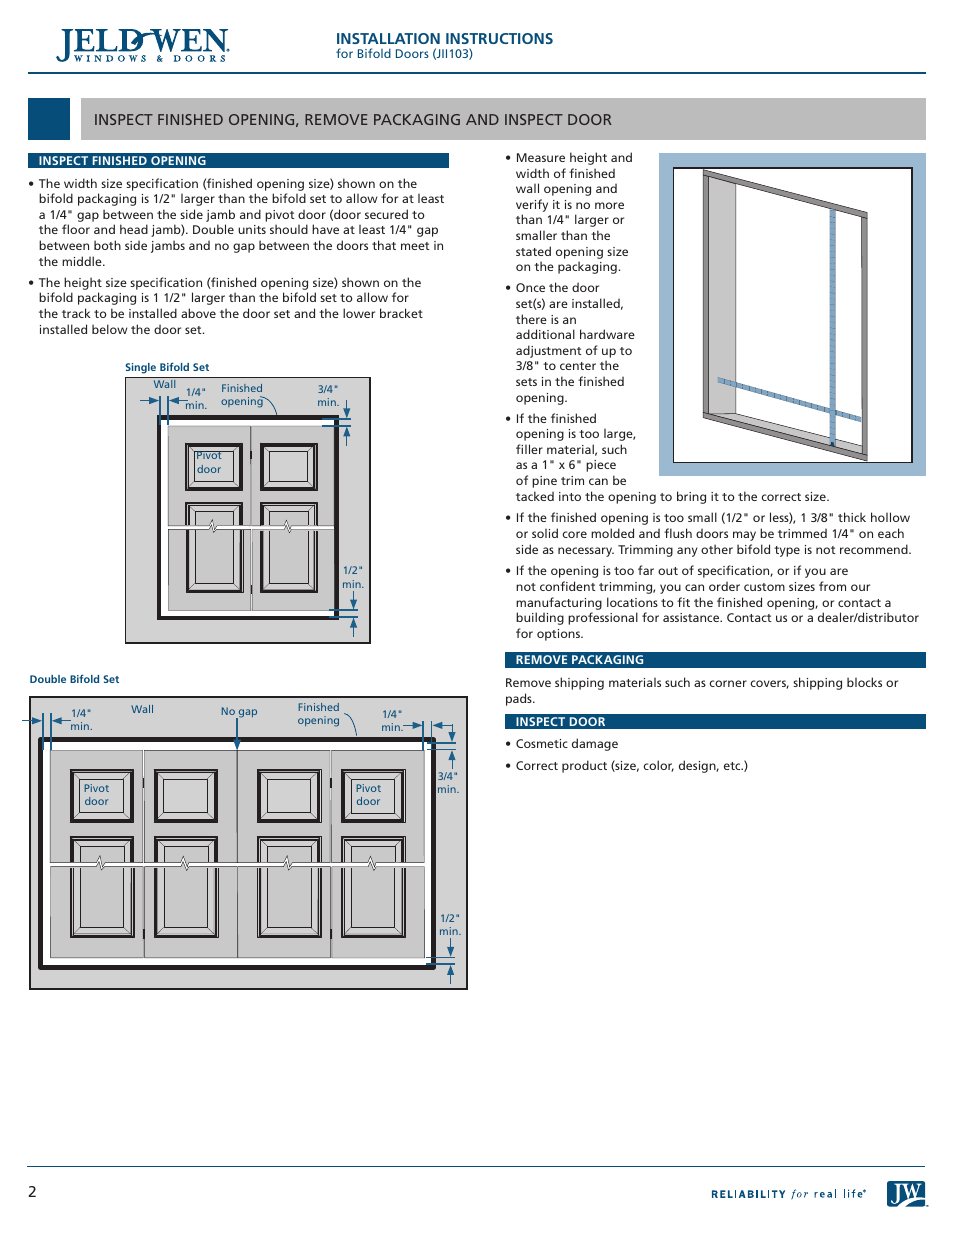 Installation Instructions Jeld Wen Jii103 Bifold Doors